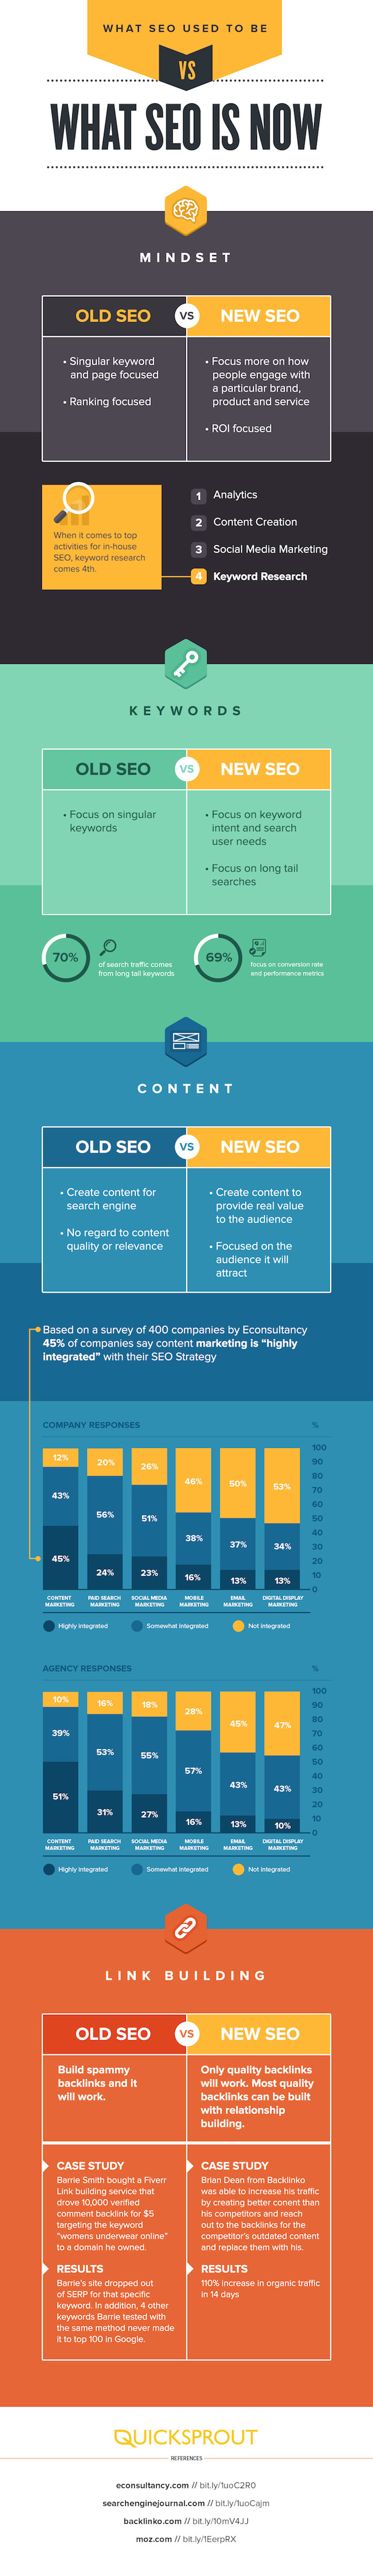 seo-then-vs-now